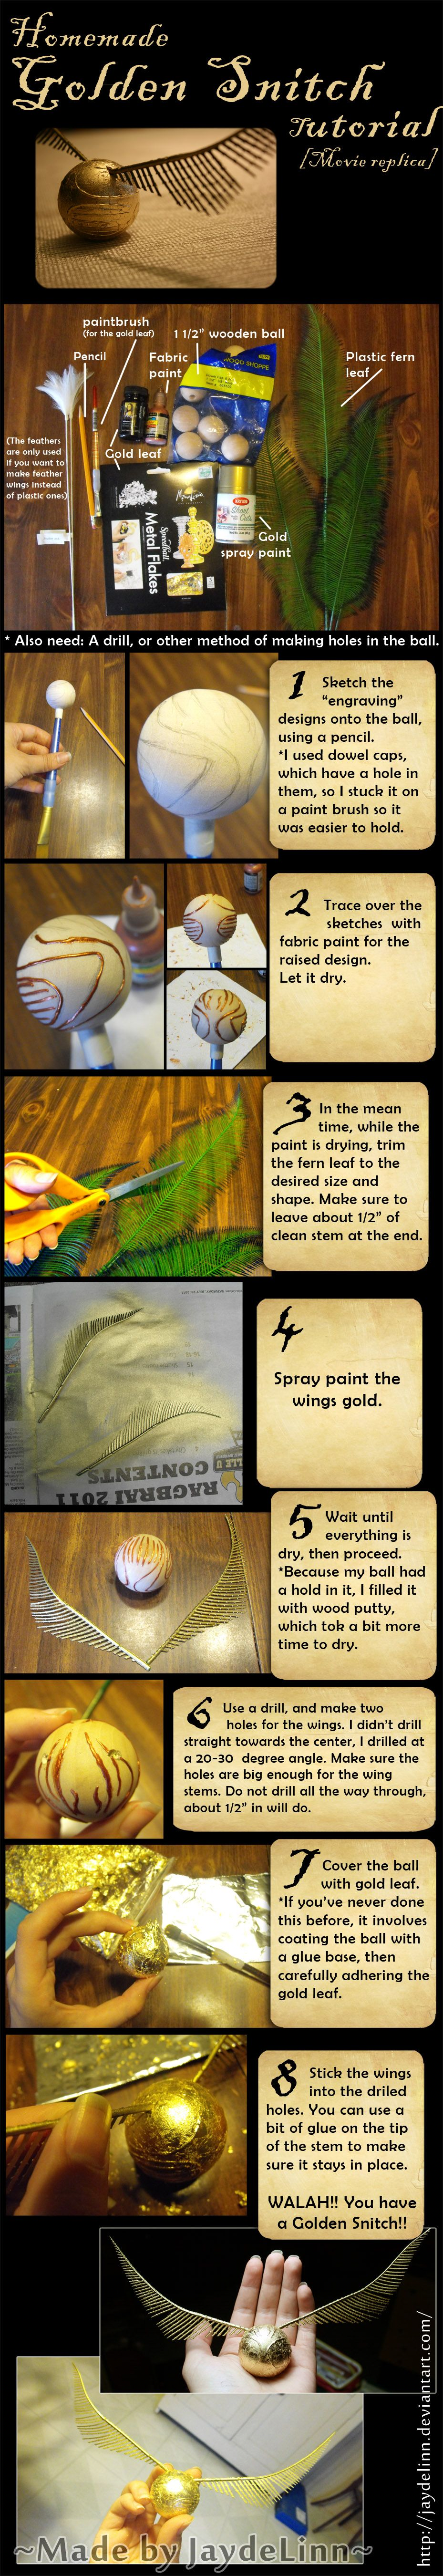 Homemade Golden Snitch Tutorial by JaydeLinn.deviantart.com on @deviantART